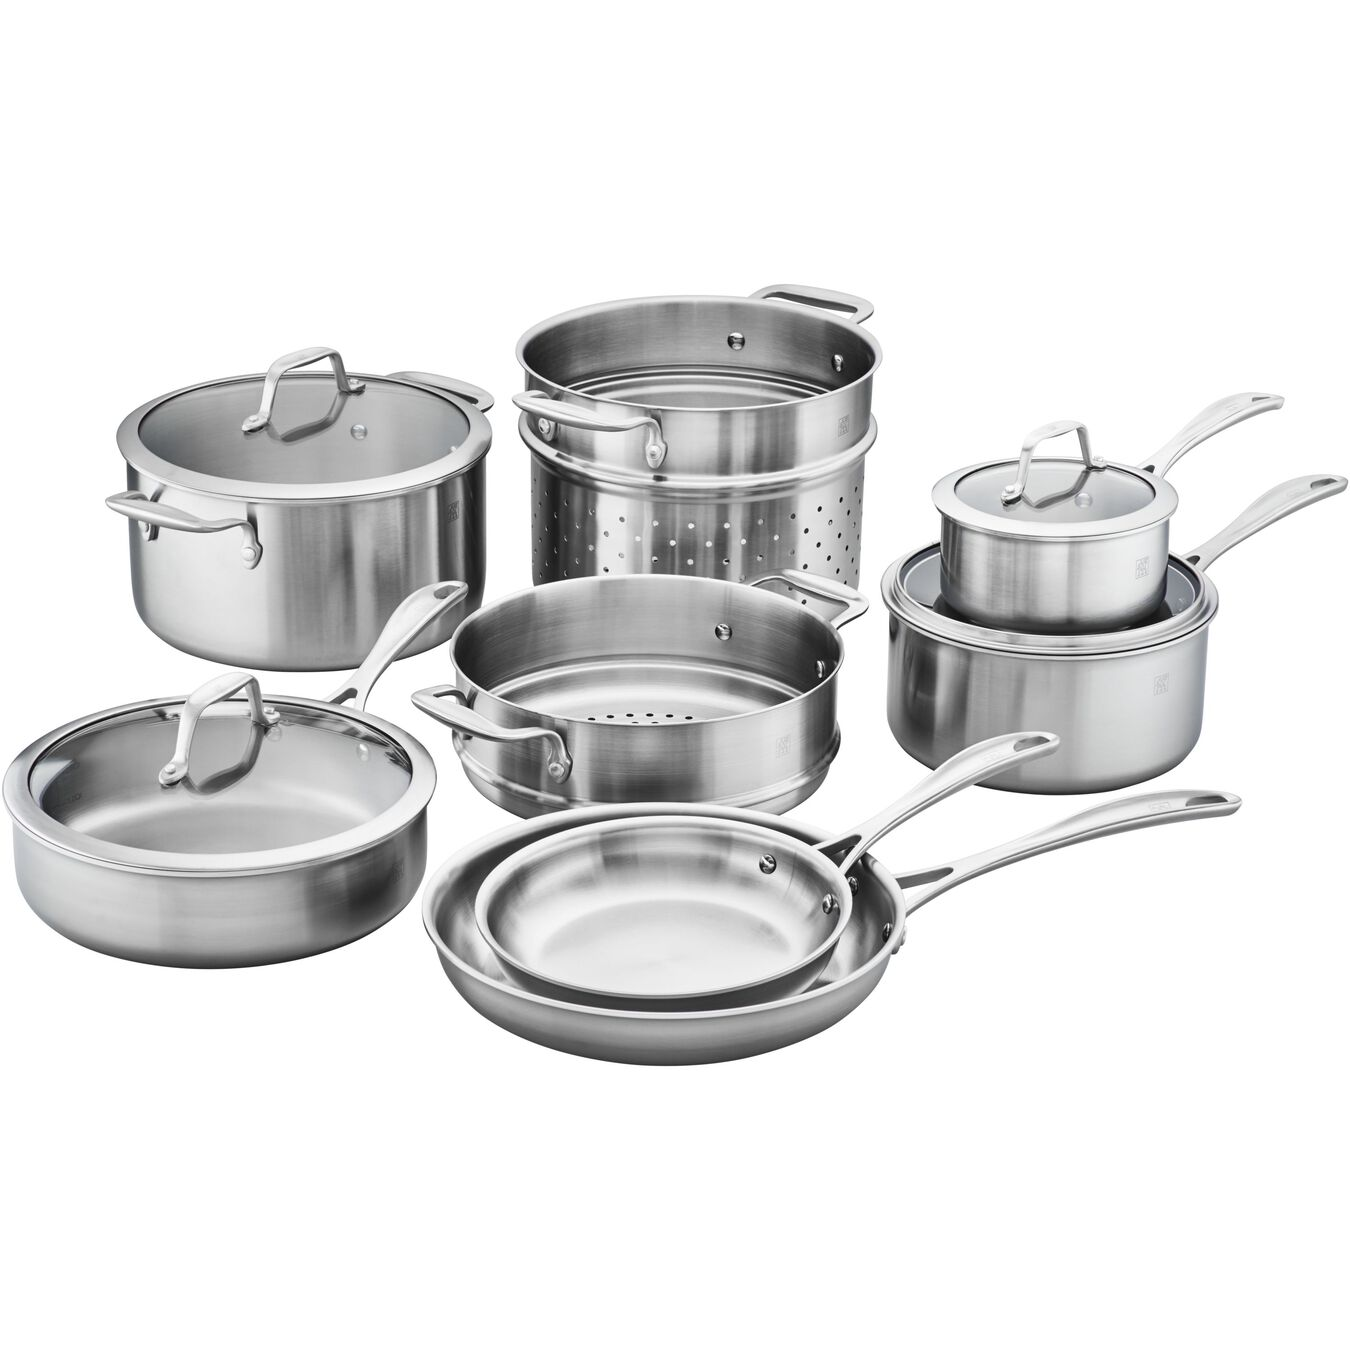 3-ply 12-pc Stainless Steel Cookware Set,,large 1